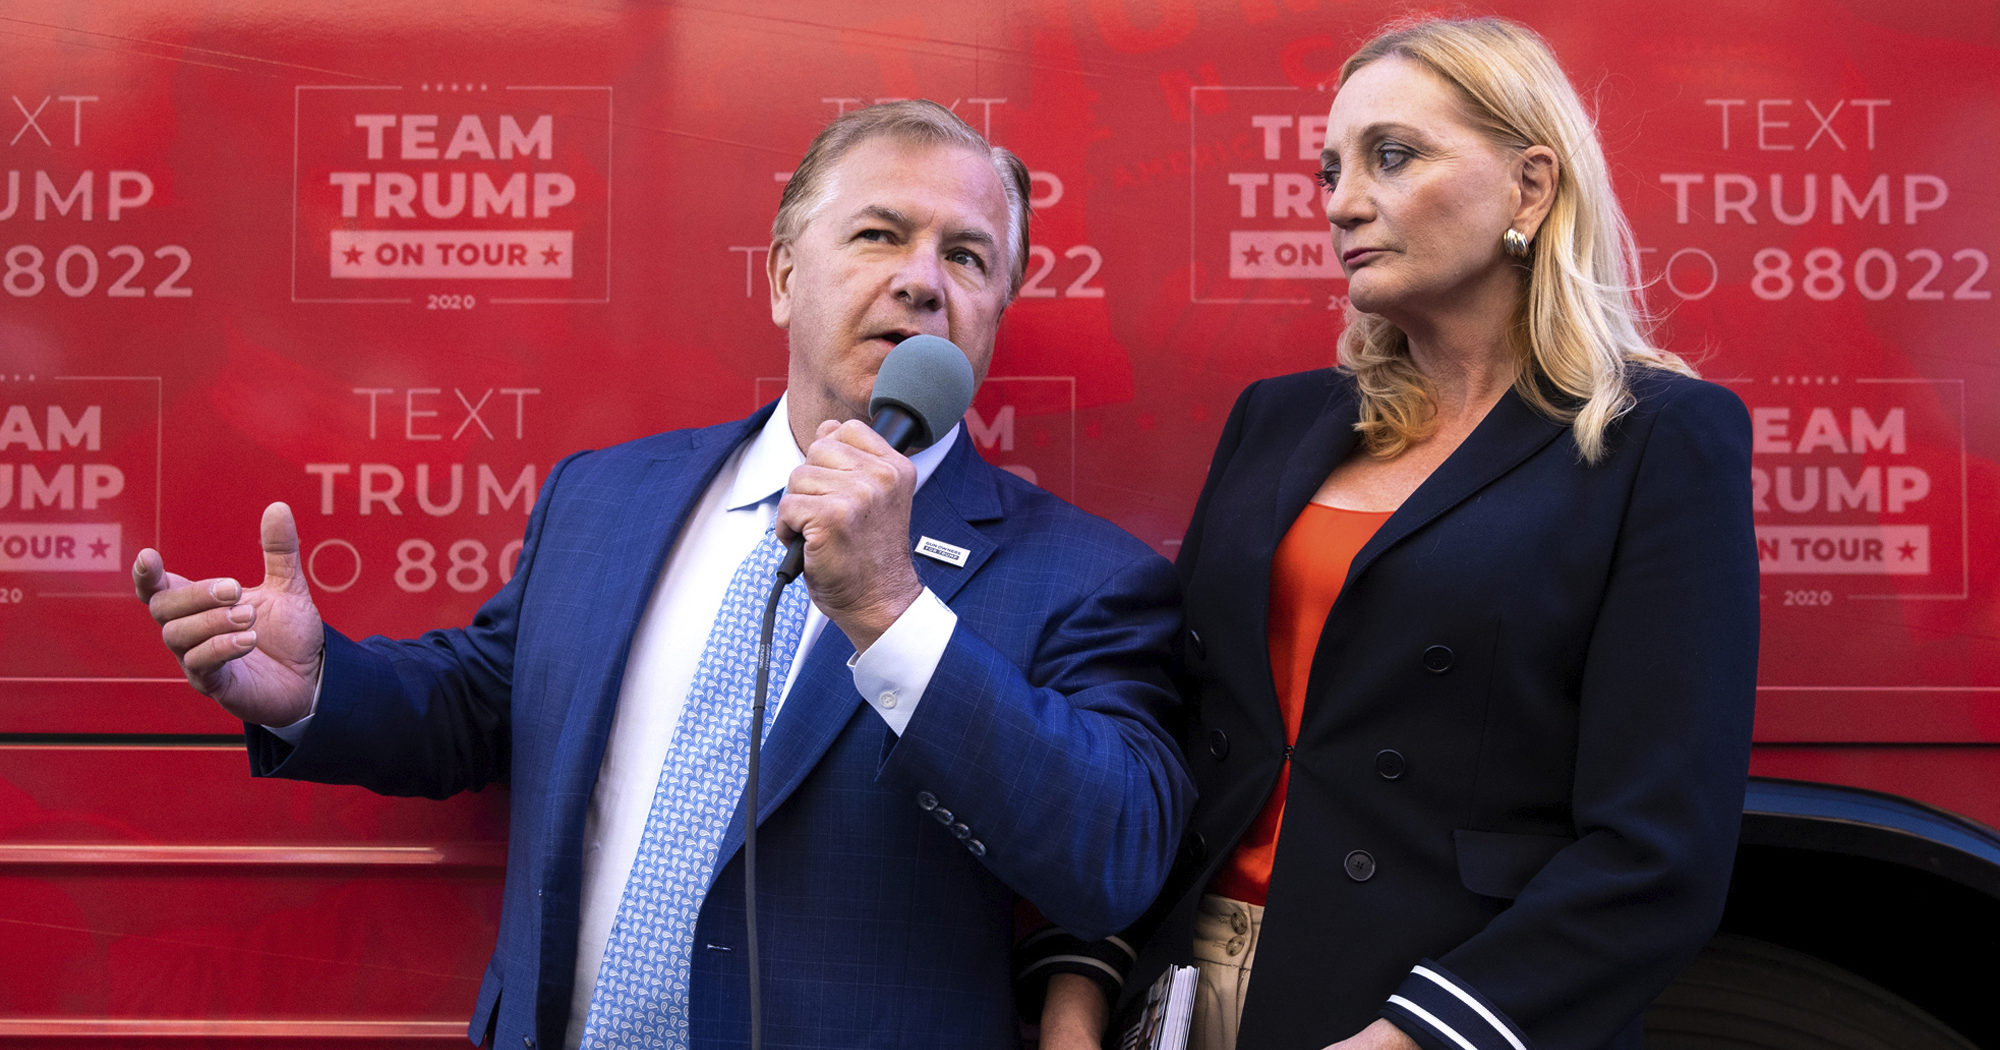 St. Louis-based lawyers Mark and Patricia McCloskey speak outside the Republican campaign office in downtown Scranton, Pennsylvania, during a Trump campaign event on Sept. 30, 2020.